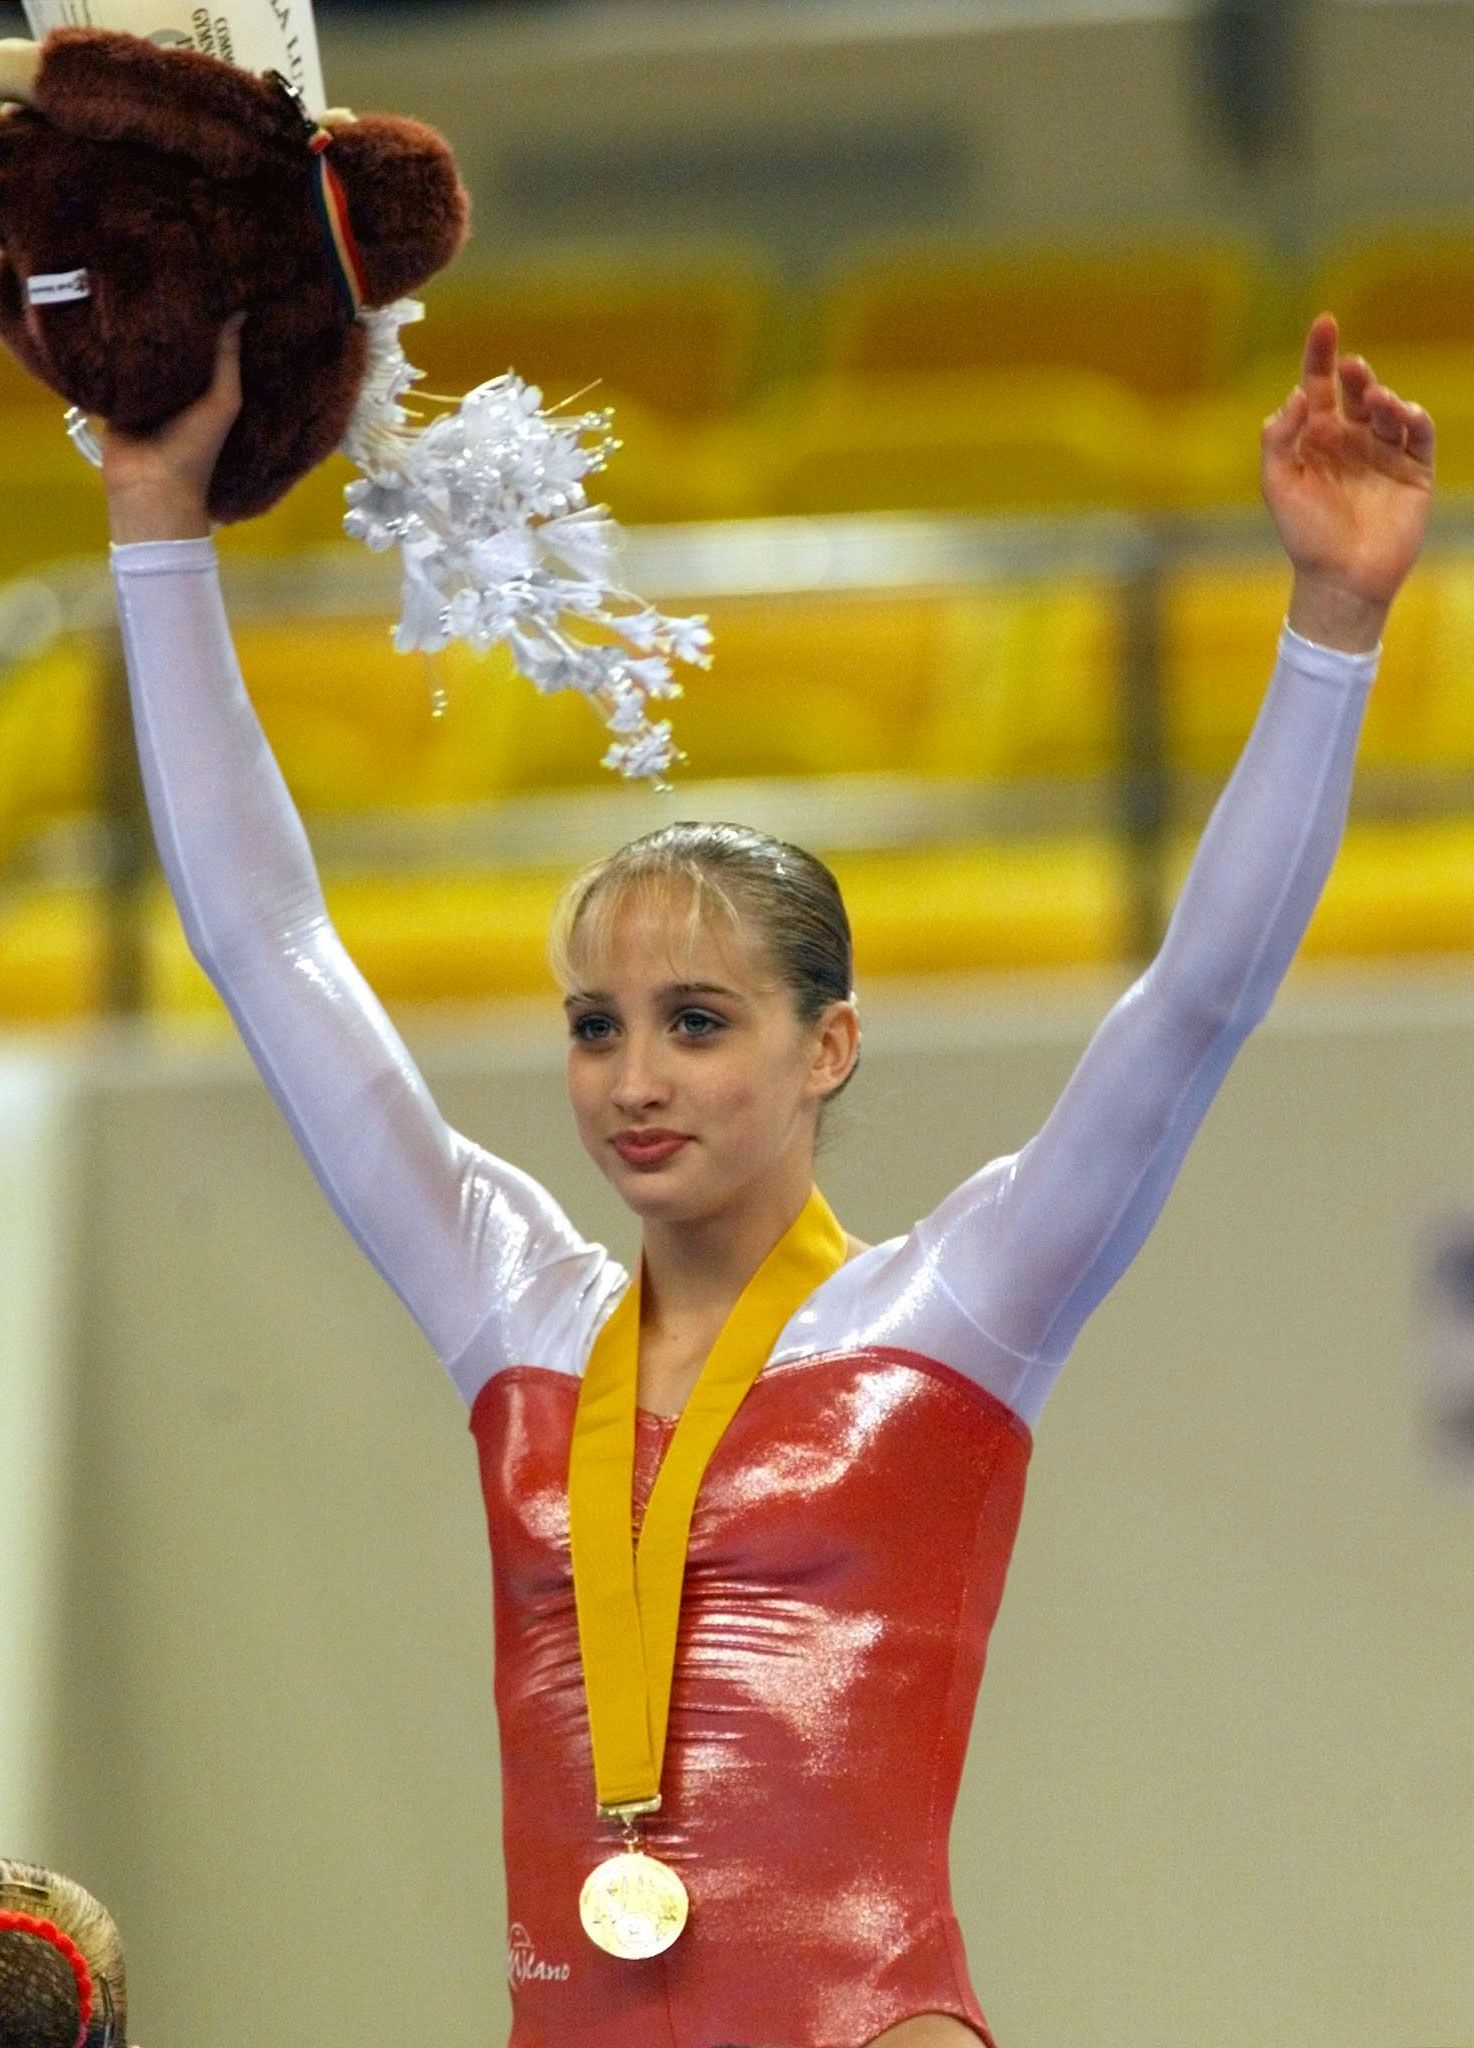 ENGLAND'S MASON WINS WOMEN'S VAULT IN GYMNASTICS OF THE 16TH COMMONWEALTH GAMES IN KUALA LUMPUR.